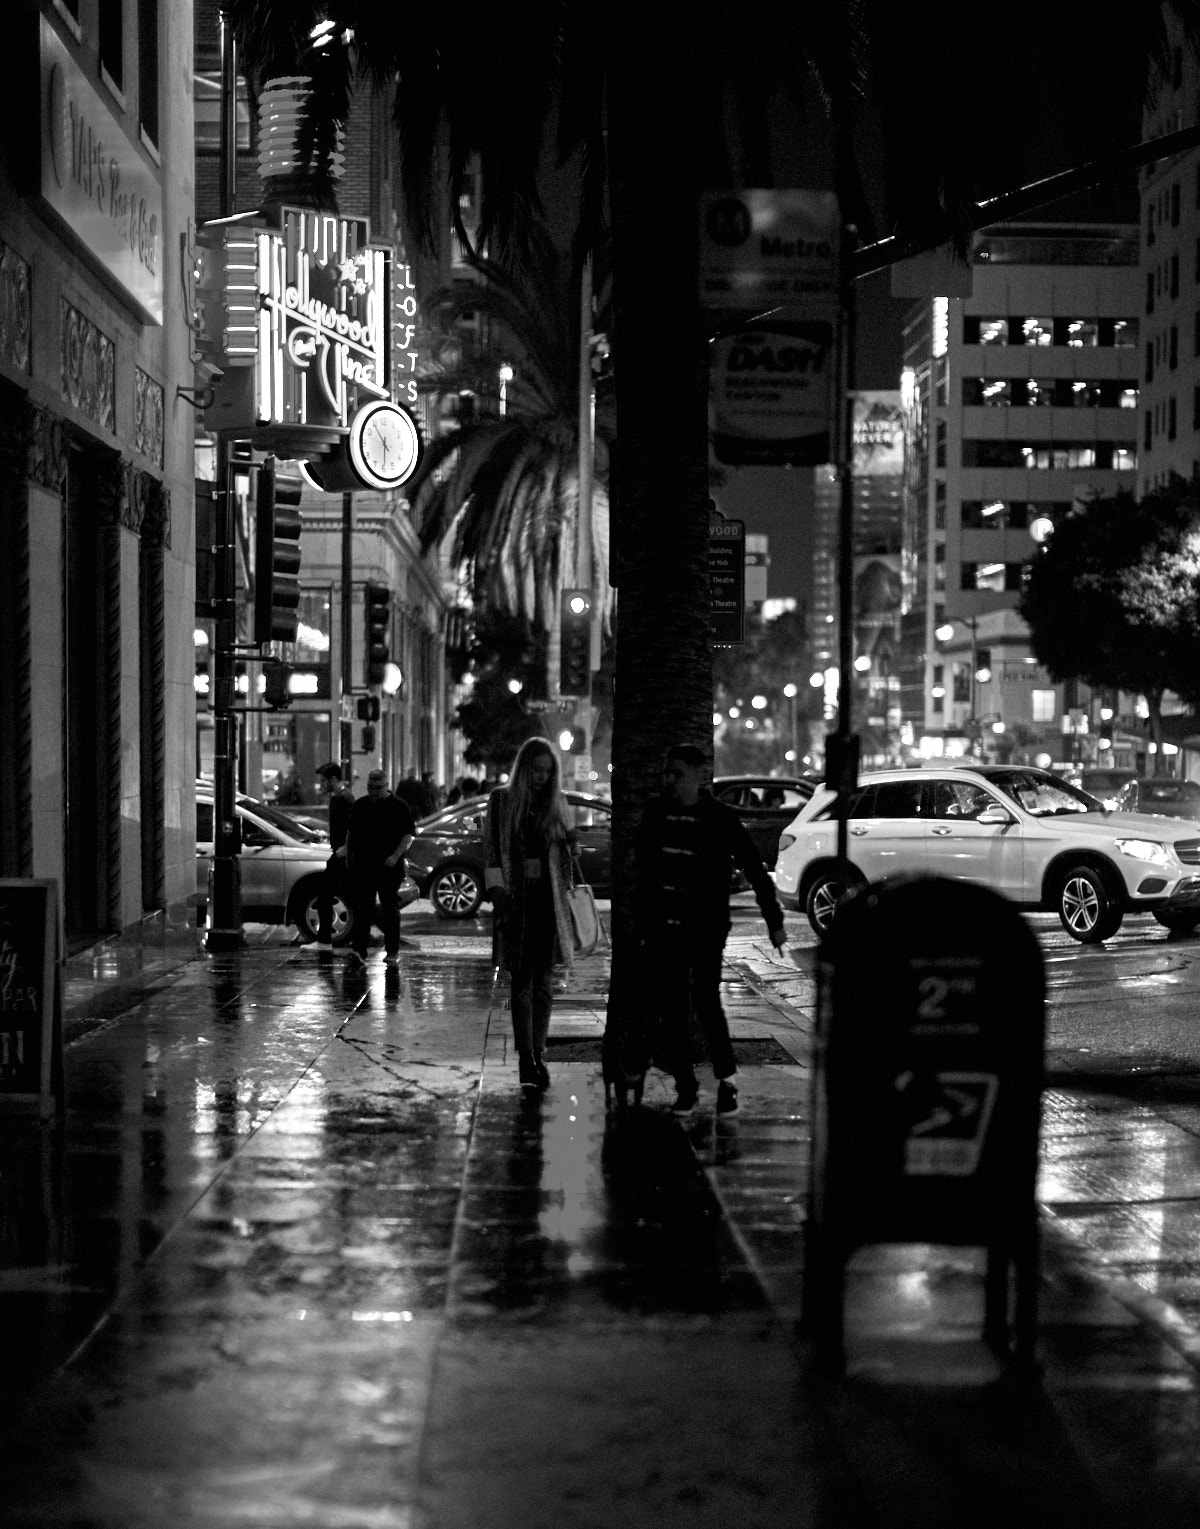 Los Angeles in the Rain. Leica M10-P with Leica 50mm Noctilux-M ASPH f/0.95. © Thorstren Overgaard.